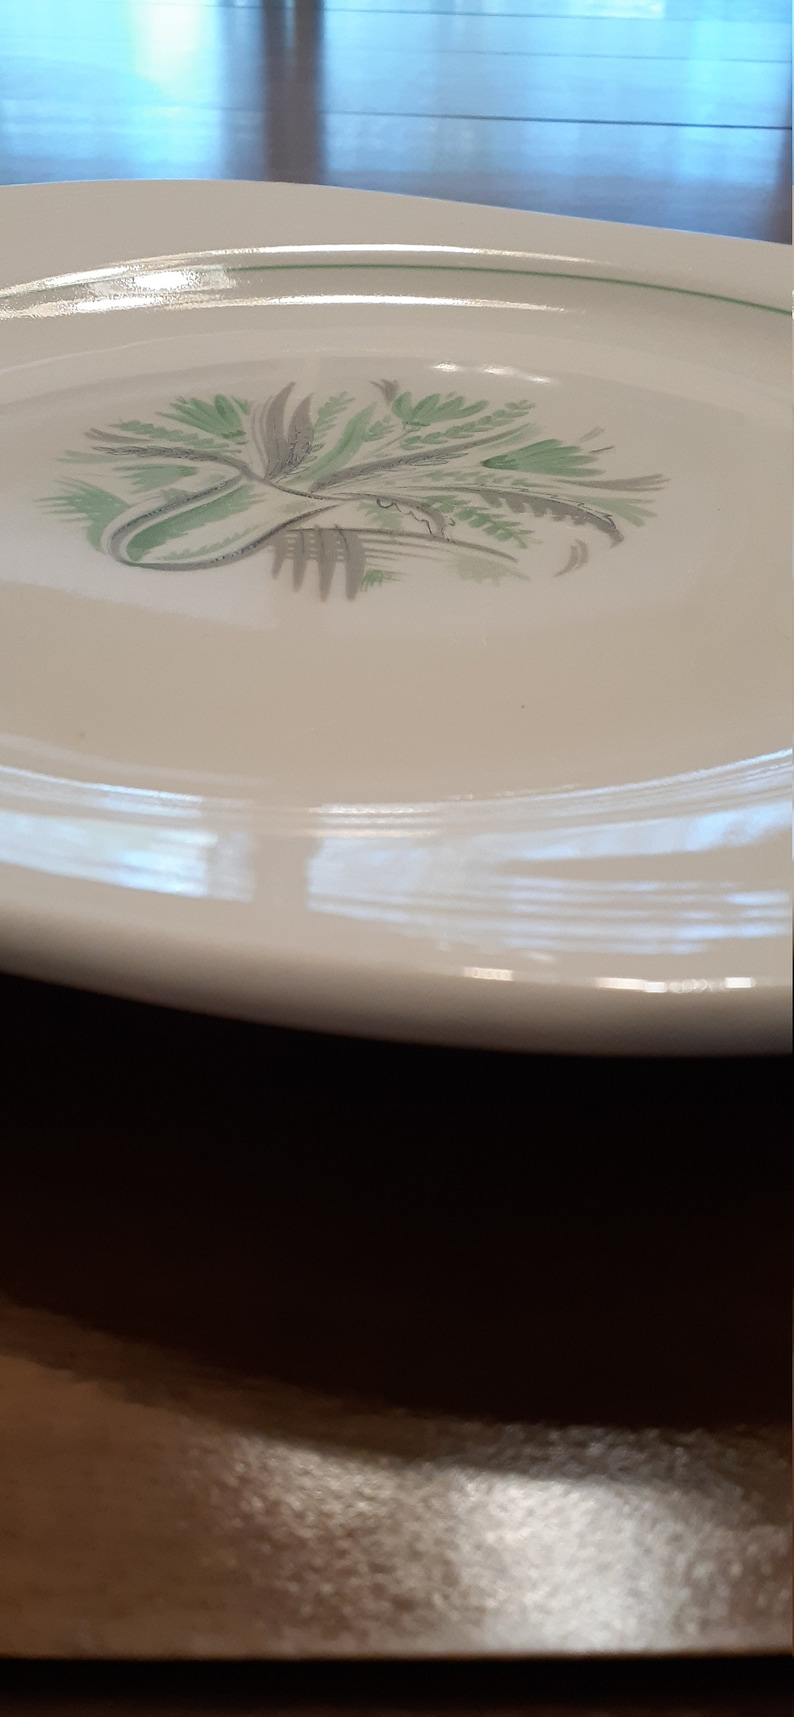 1940s platter Westwood by Limoges China W B-48 1 Ferndale Green /& white 15.5